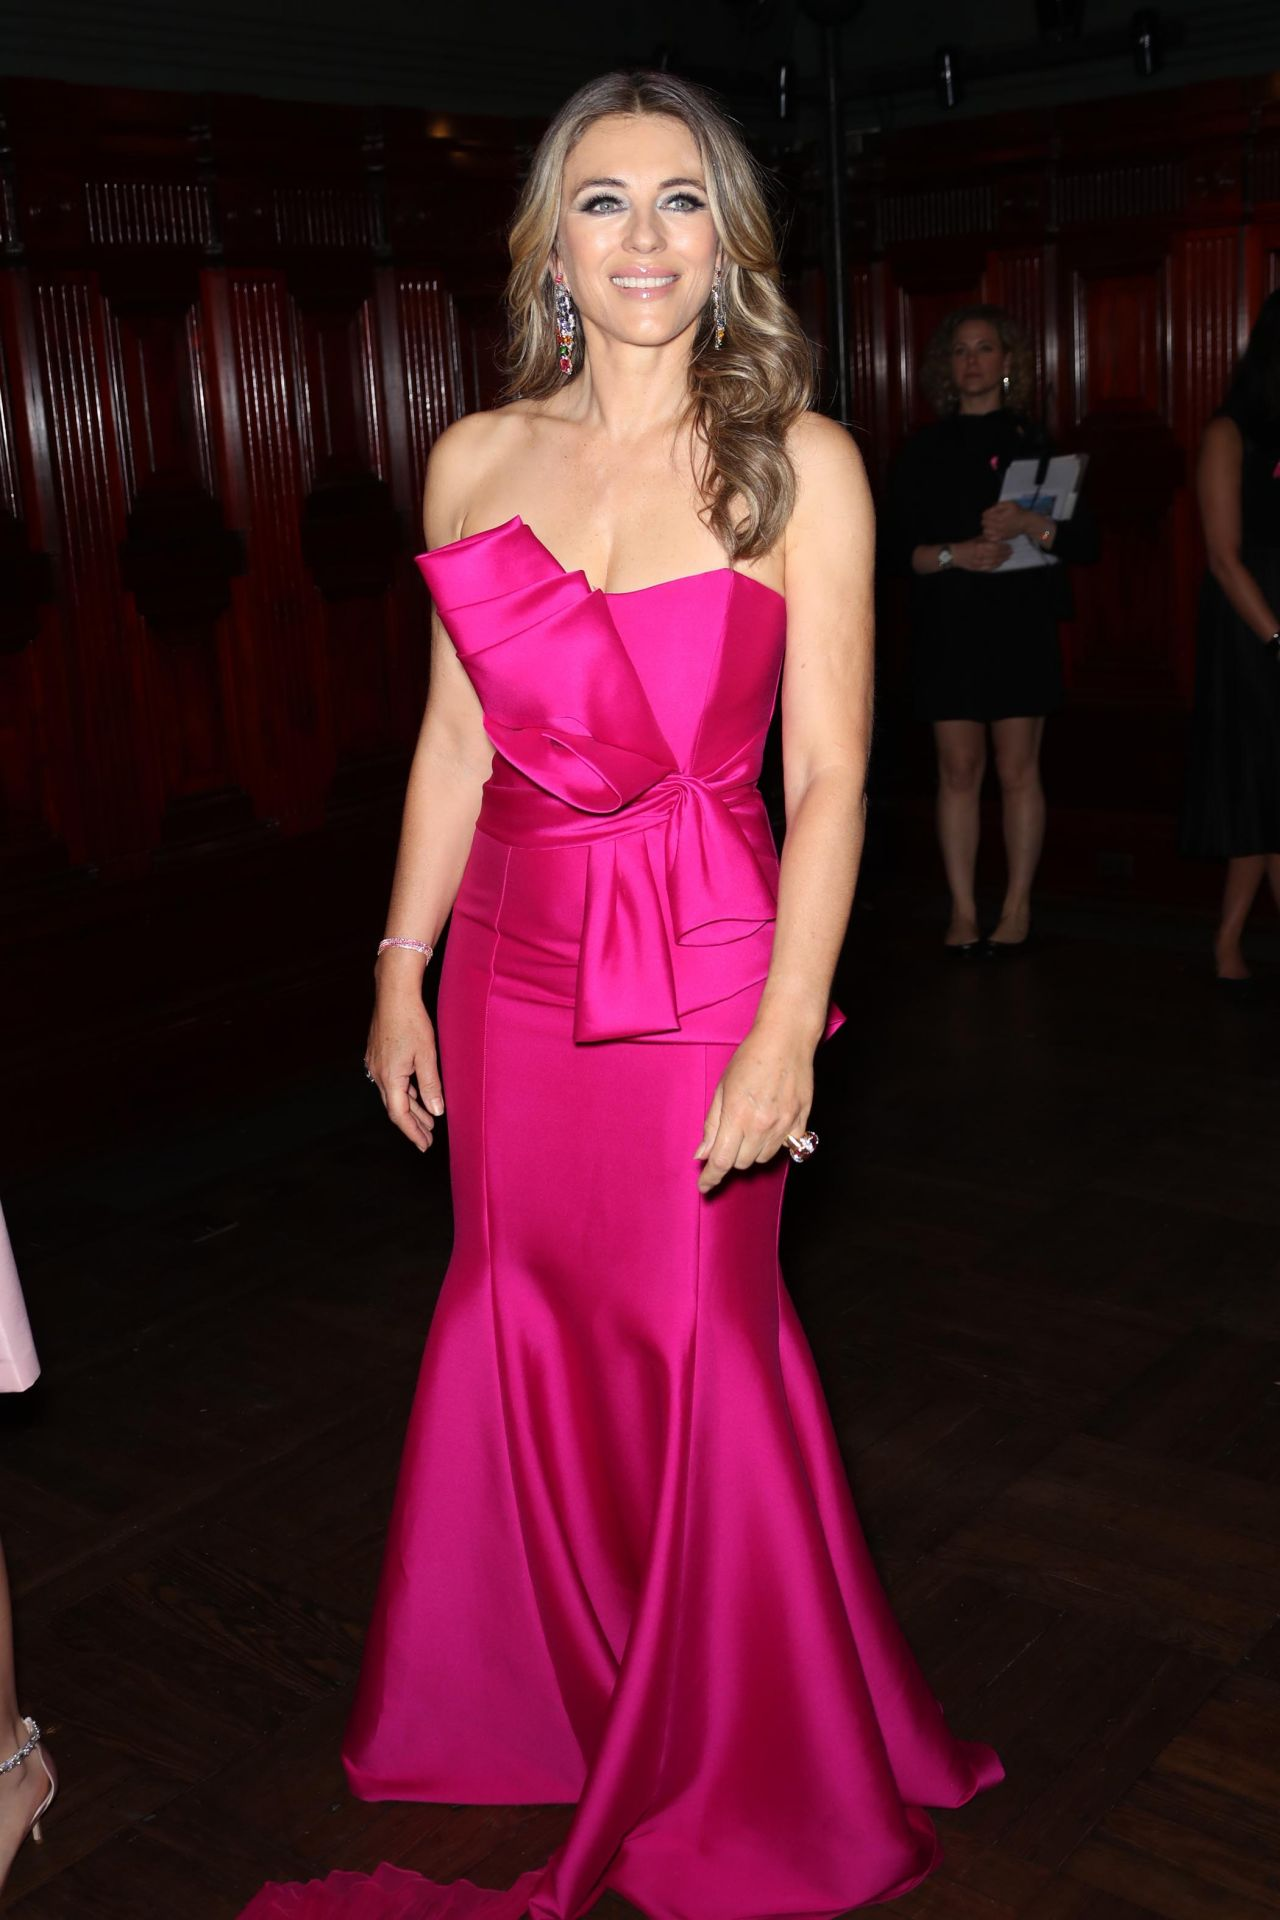 http://celebmafia.com/wp-content/uploads/2018/05/elizabeth-hurley-the-hot-pink-party-new-depths-in-nyc-05-17-2018-11.jpg